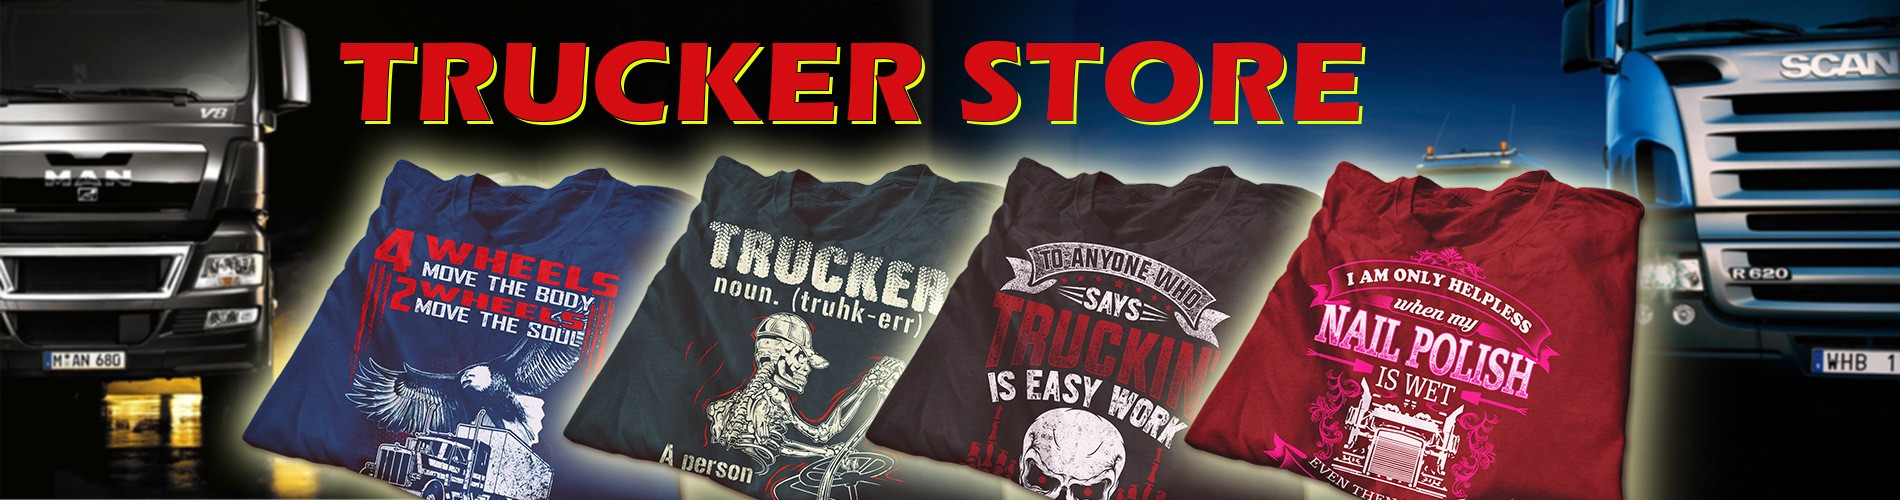 TRUCK DRIVER Store